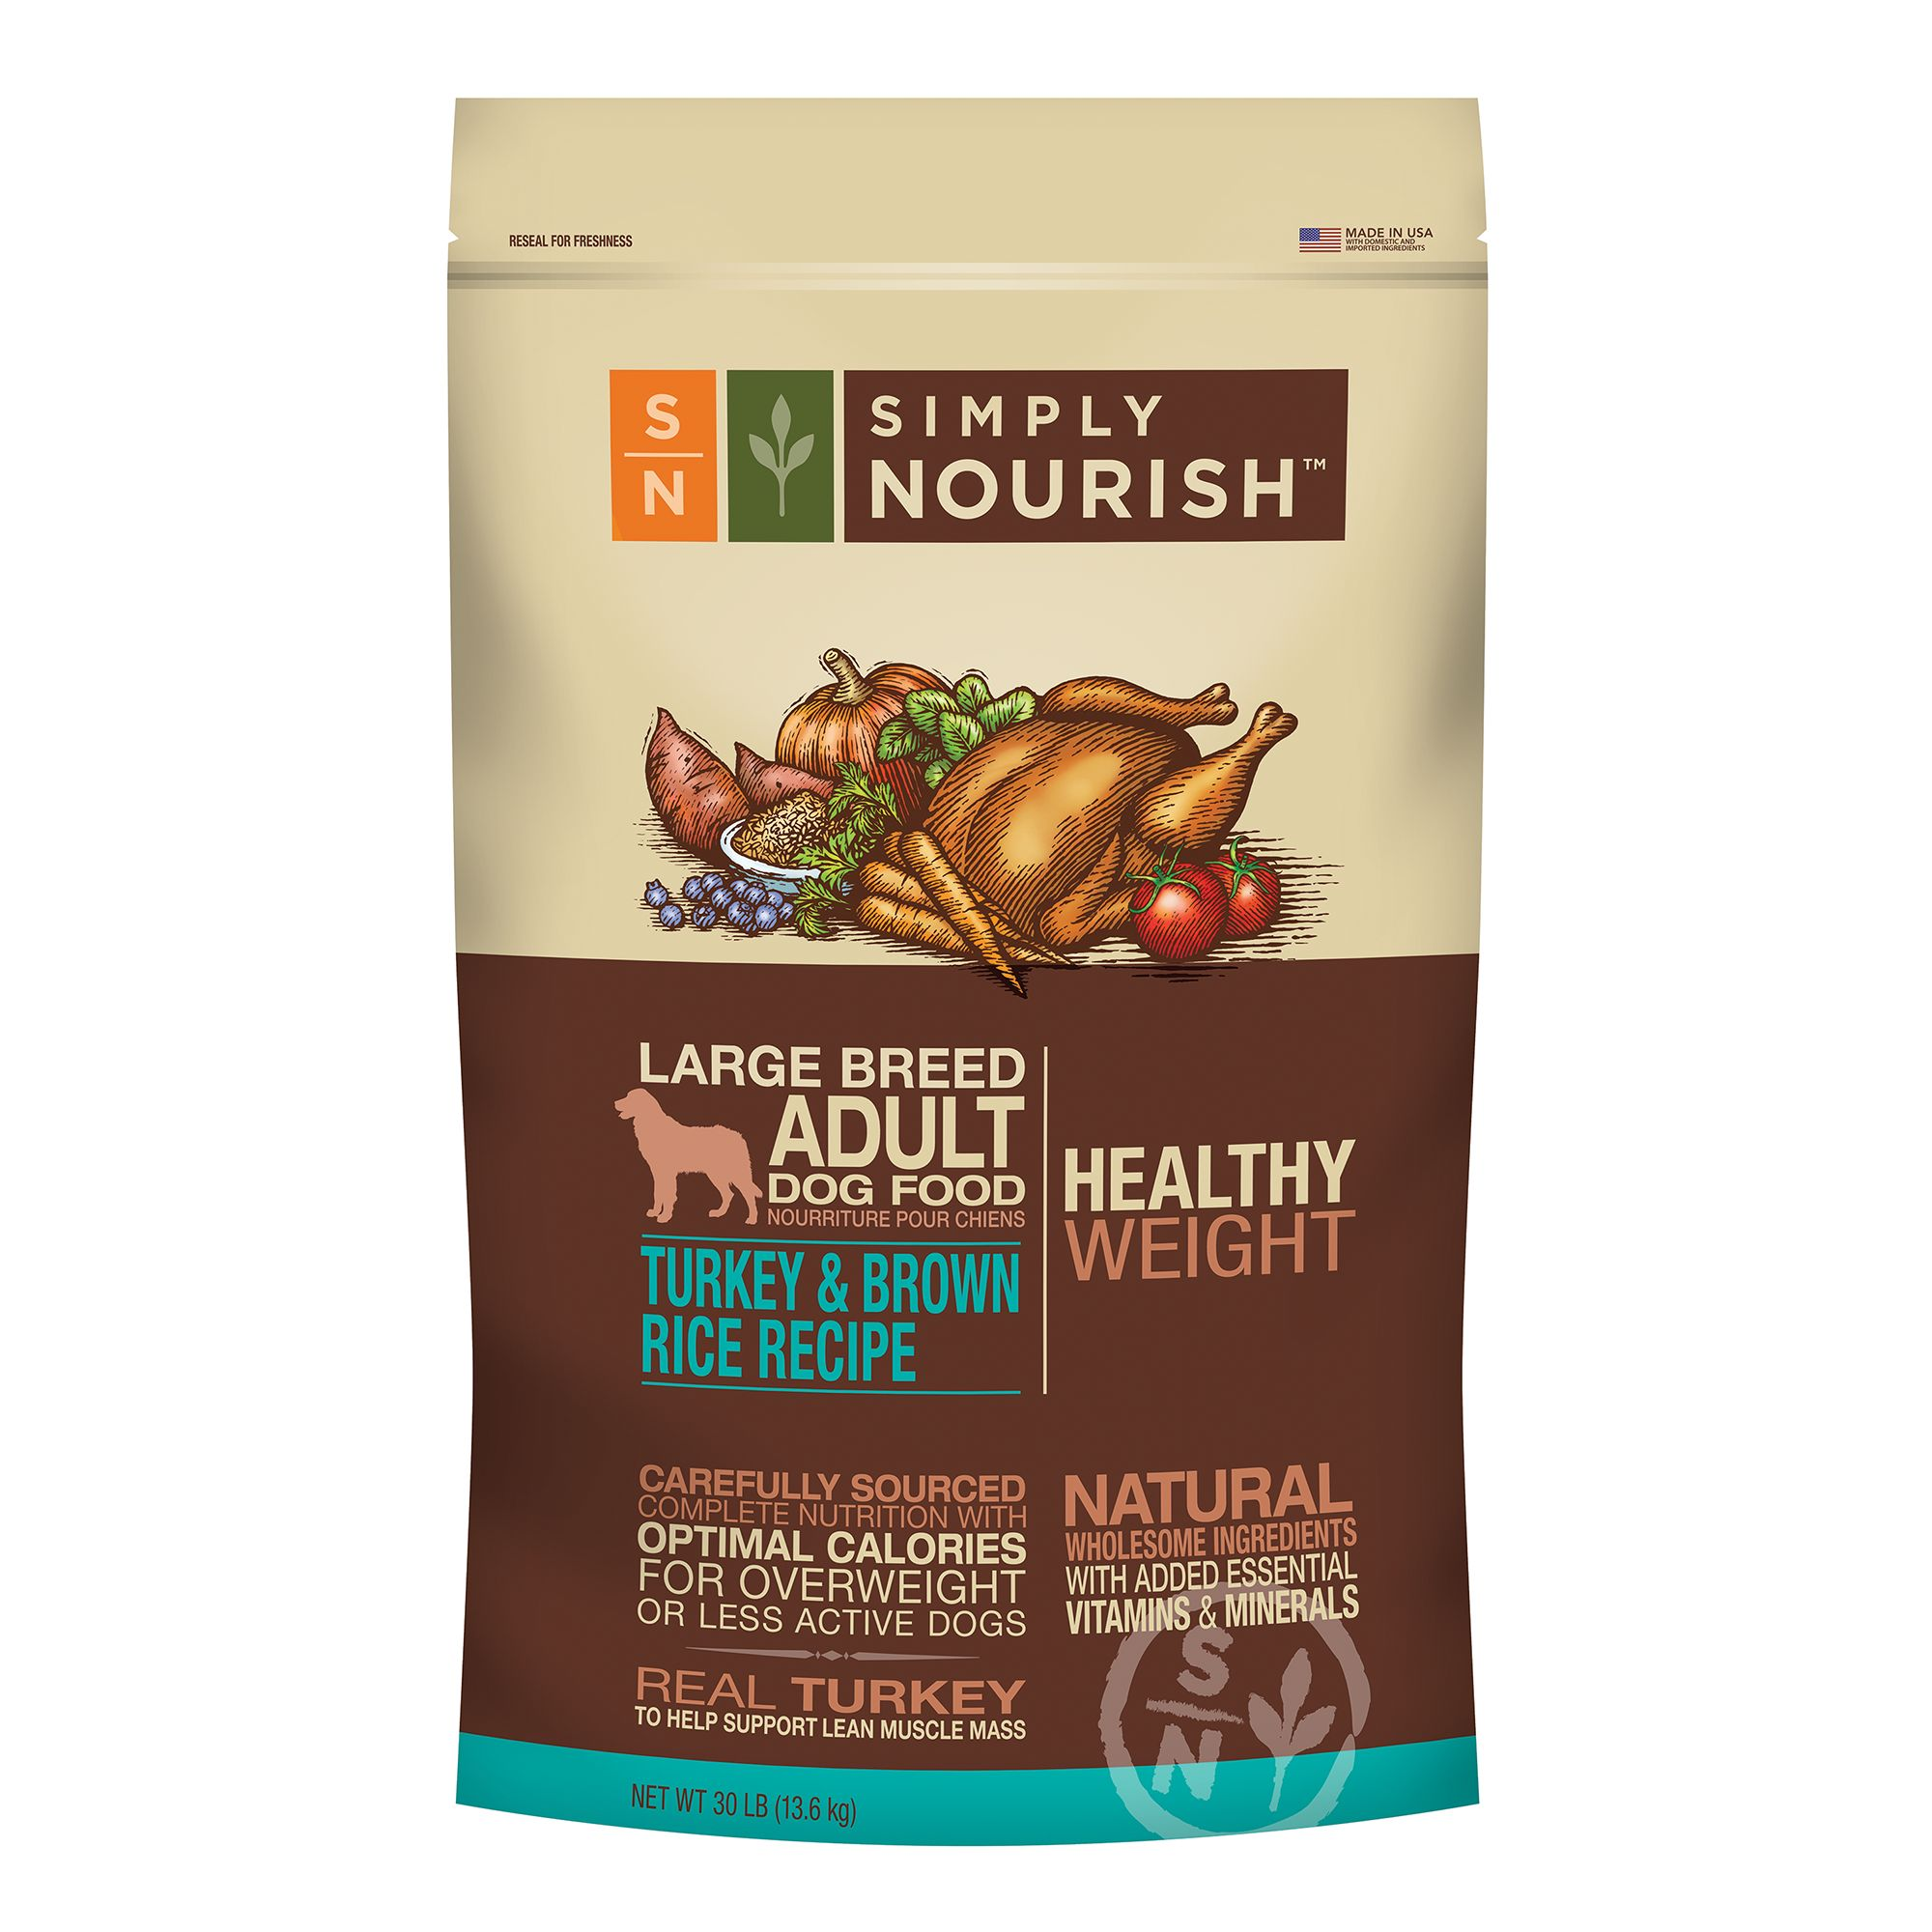 Simply Nourish Healthy Weight Large Breed Adult Dog Food - Natural, Turkey and Brown Rice size: 30 Lb 5197937